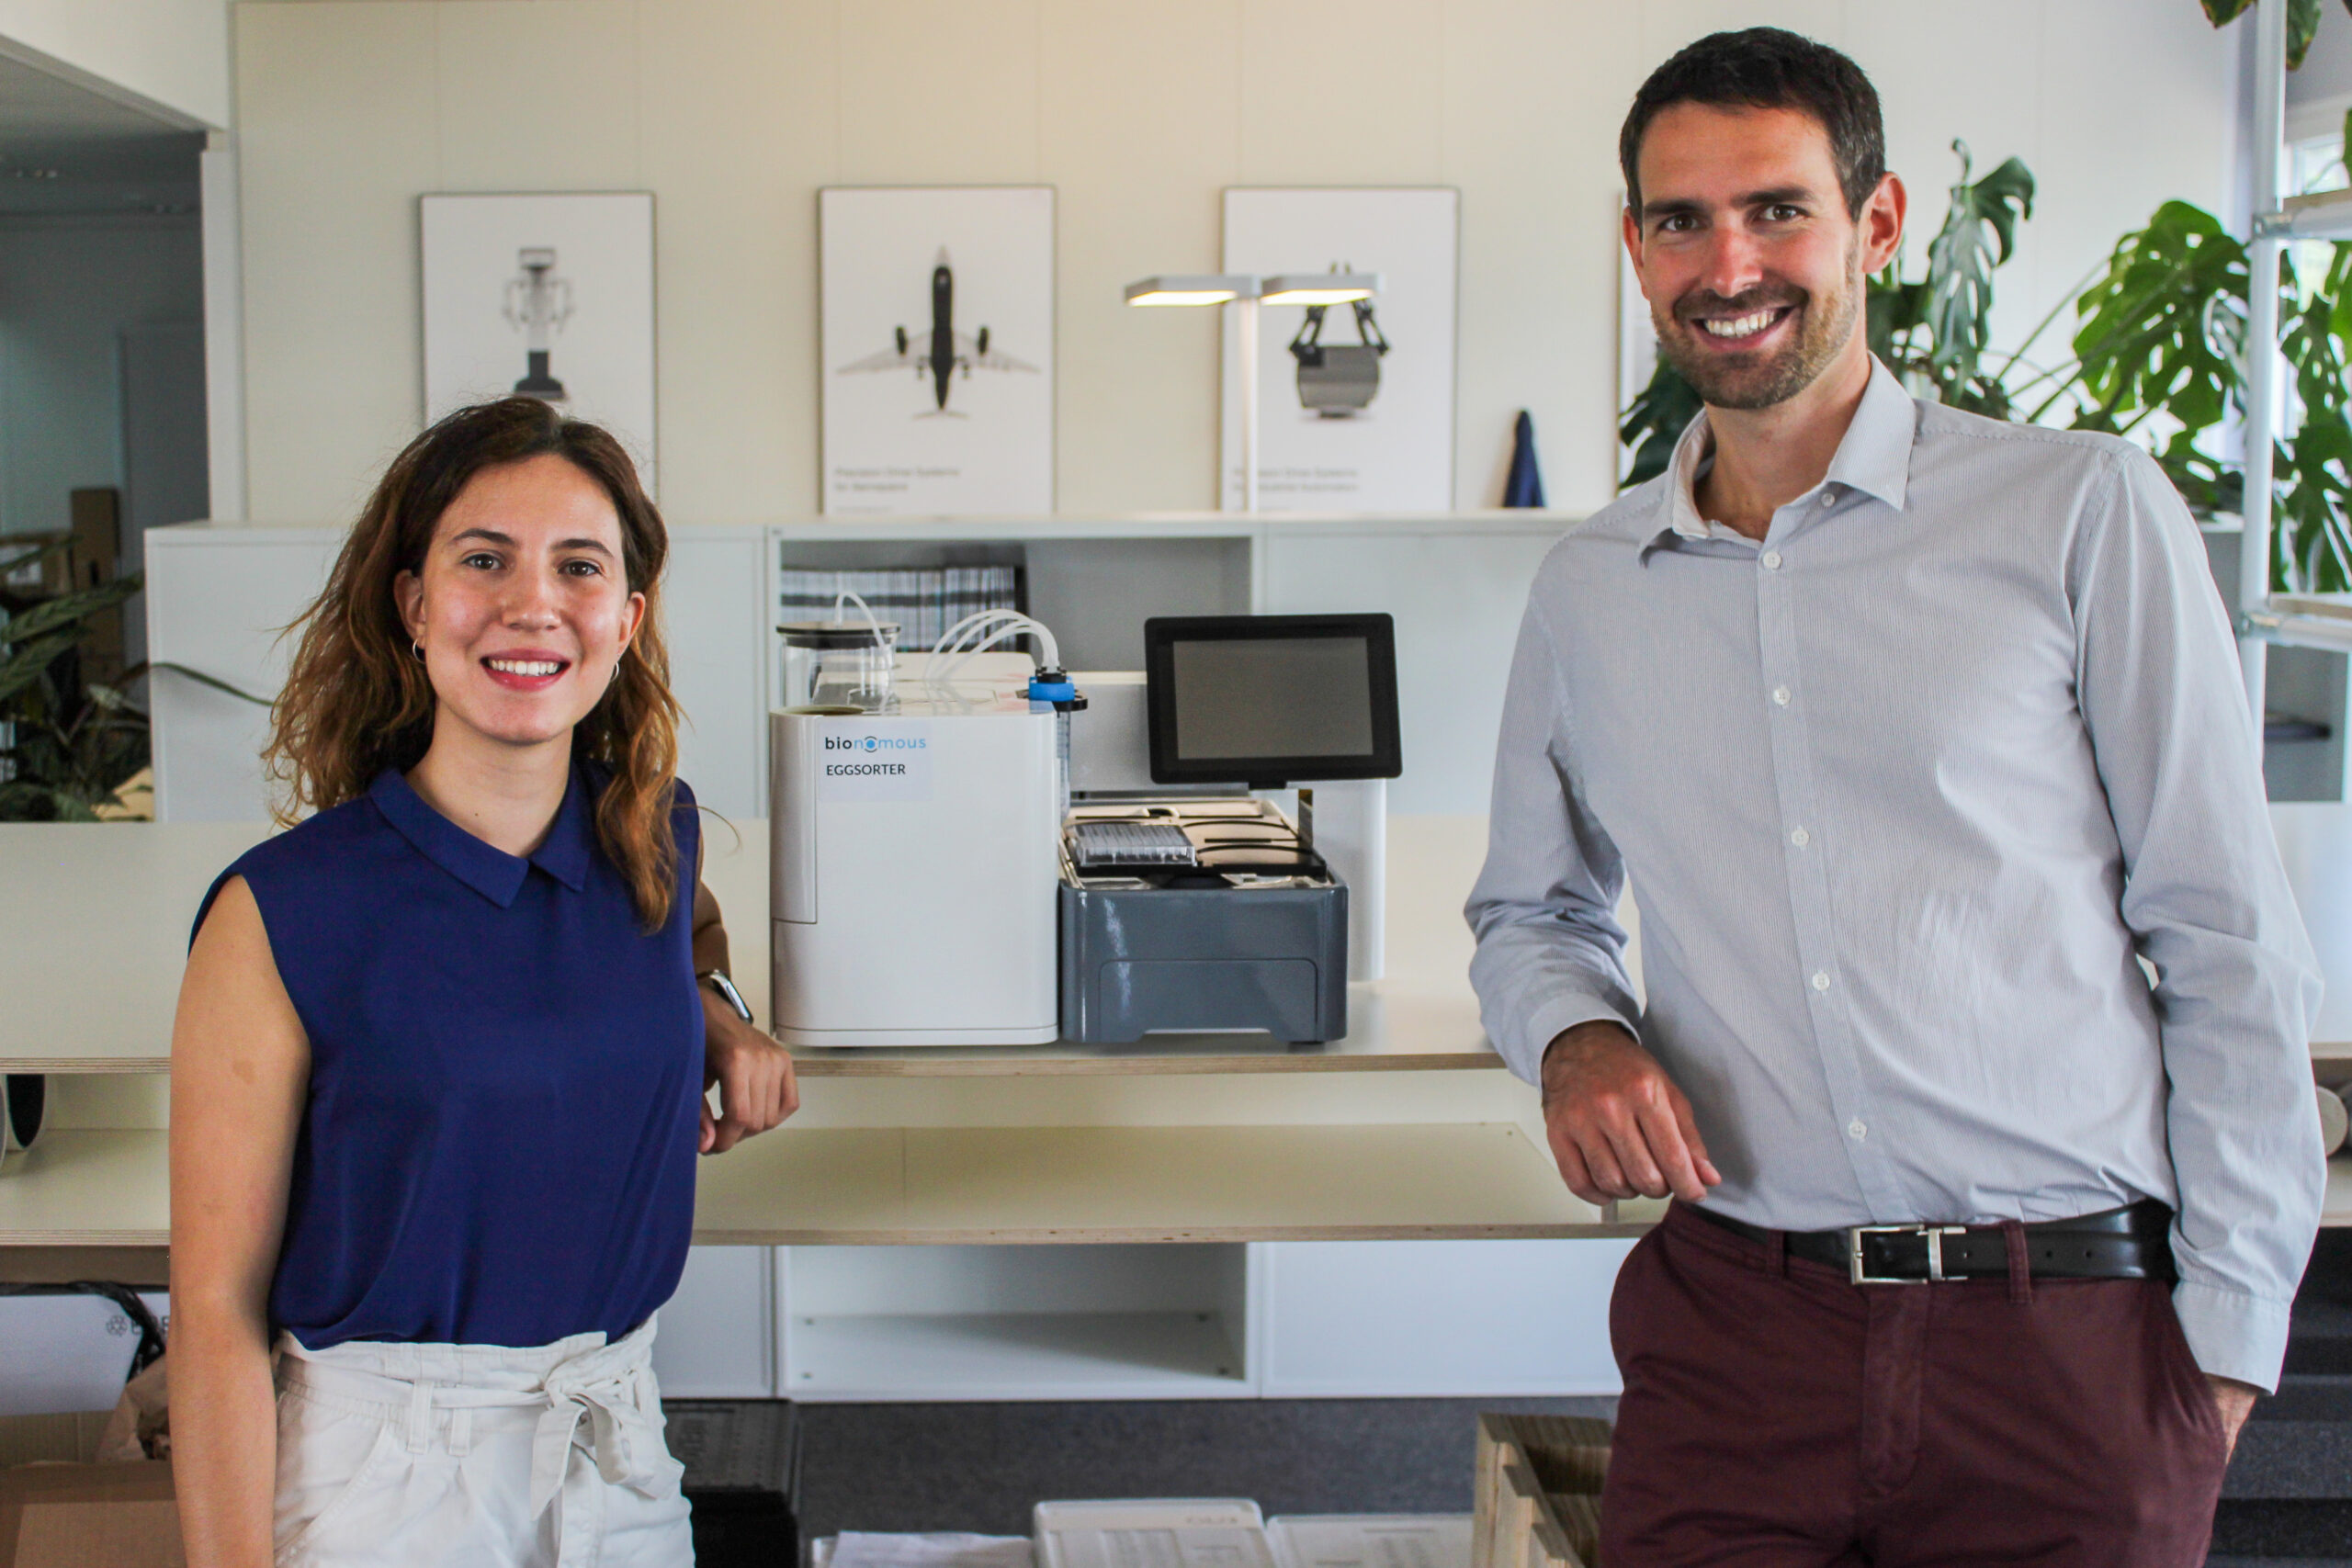 BIONOMOUS raises CHF 1.3 million Seed funding in a round led by Nivalis Group